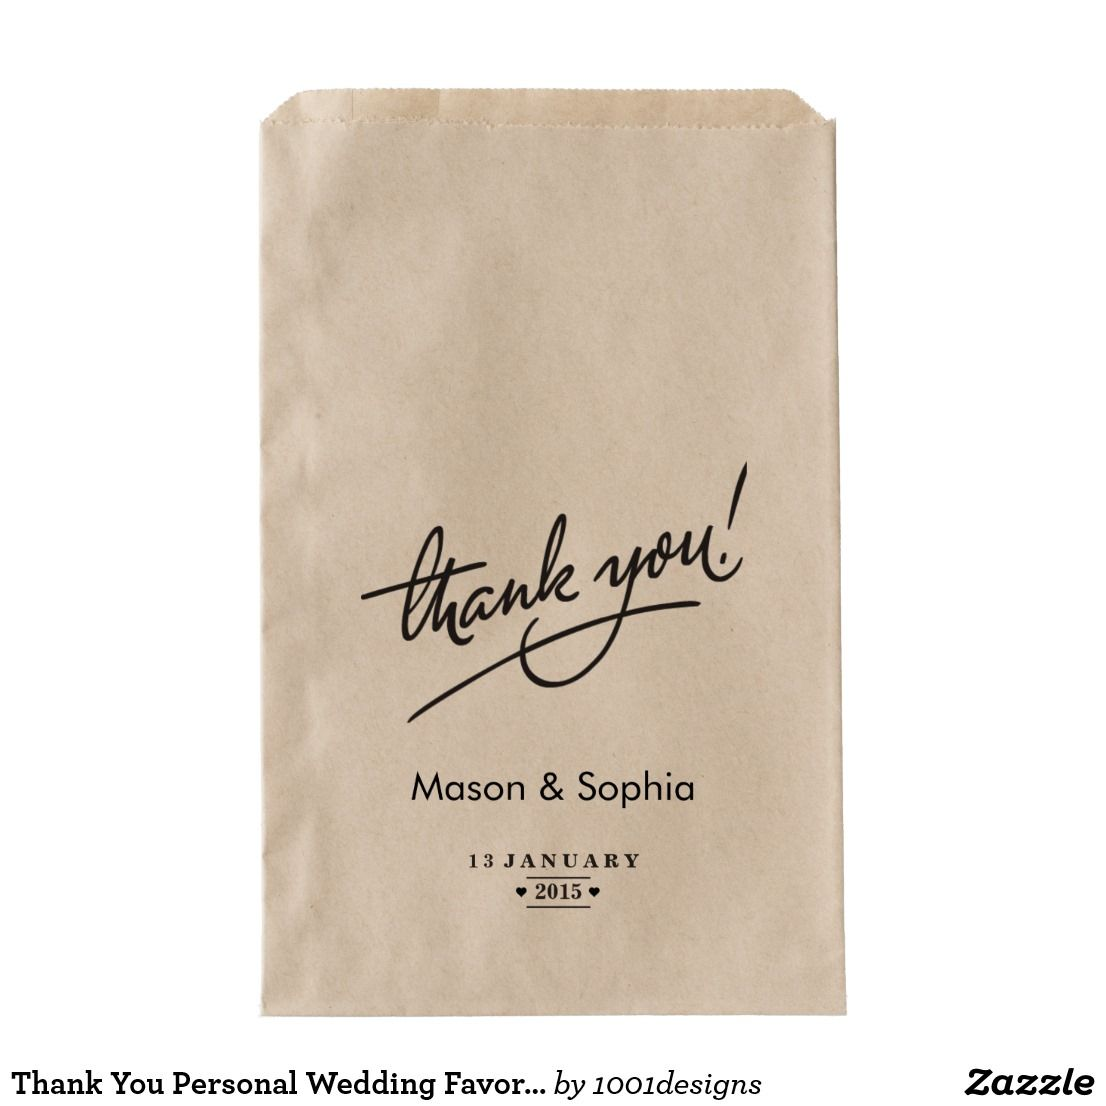 Thank You Personal Wedding Favor Bag | Favor bags, Wedding favor ...